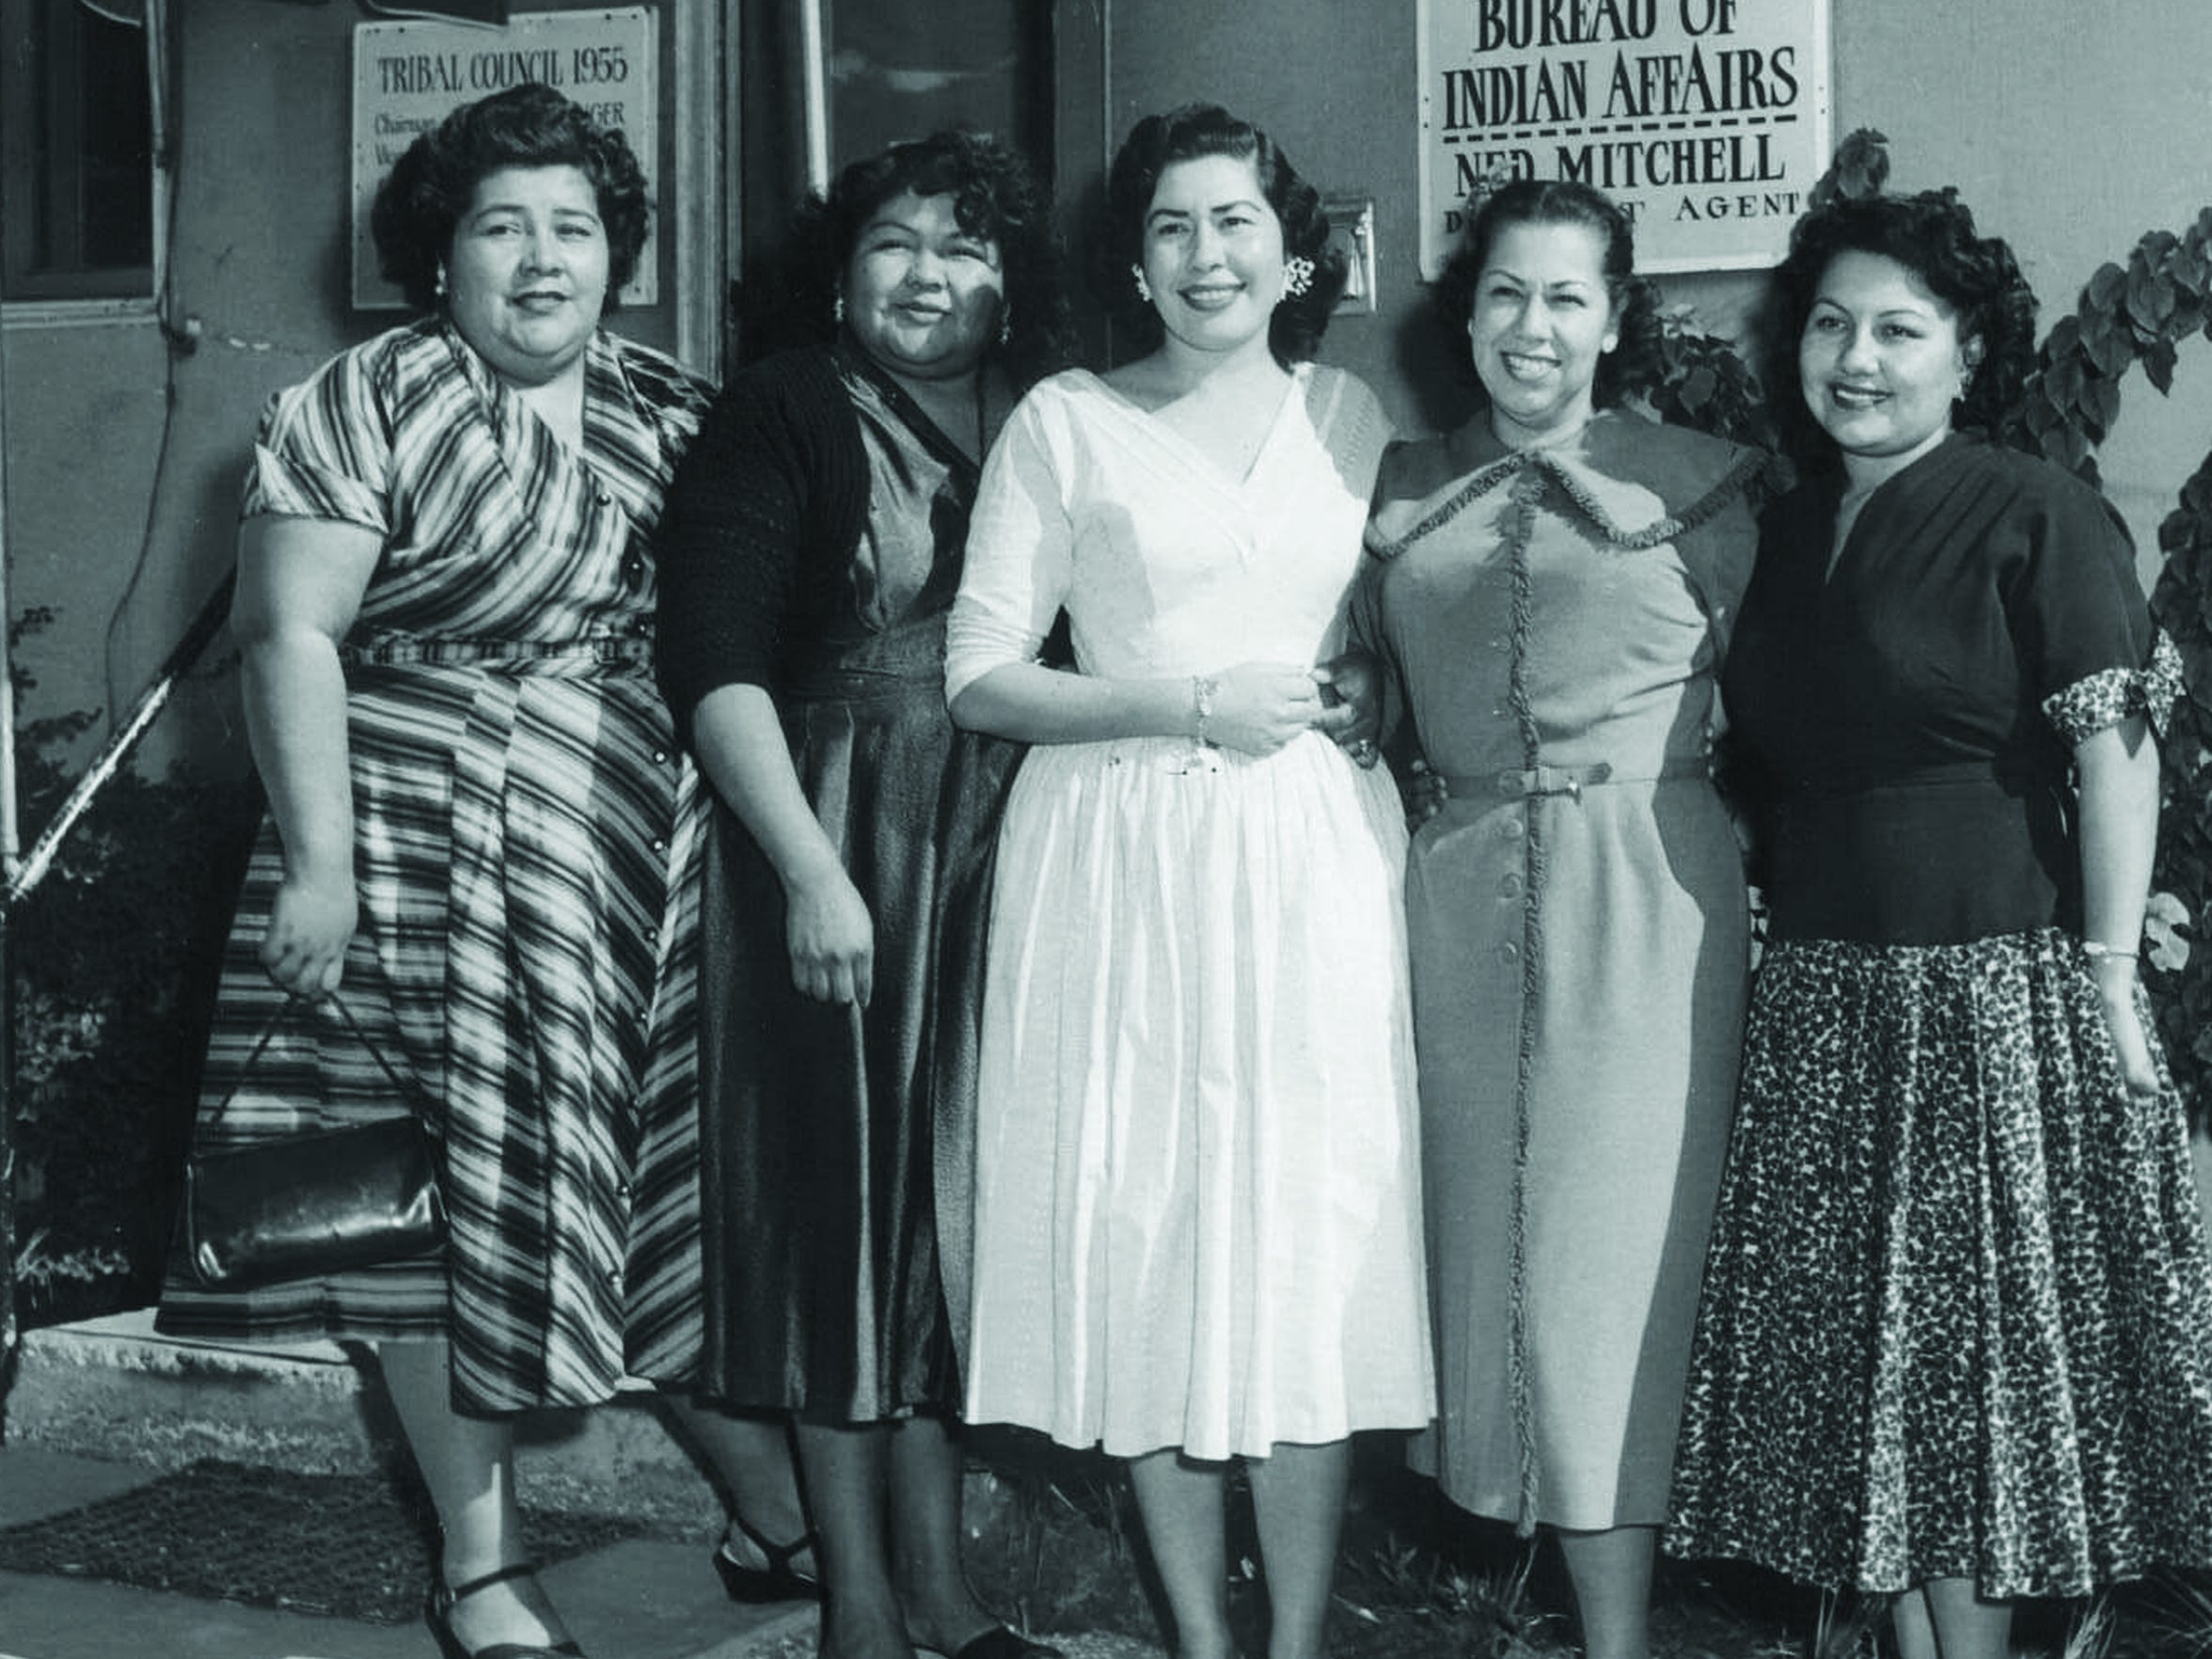 The all-woman Agua Caliente Band of Cahuilla Indians